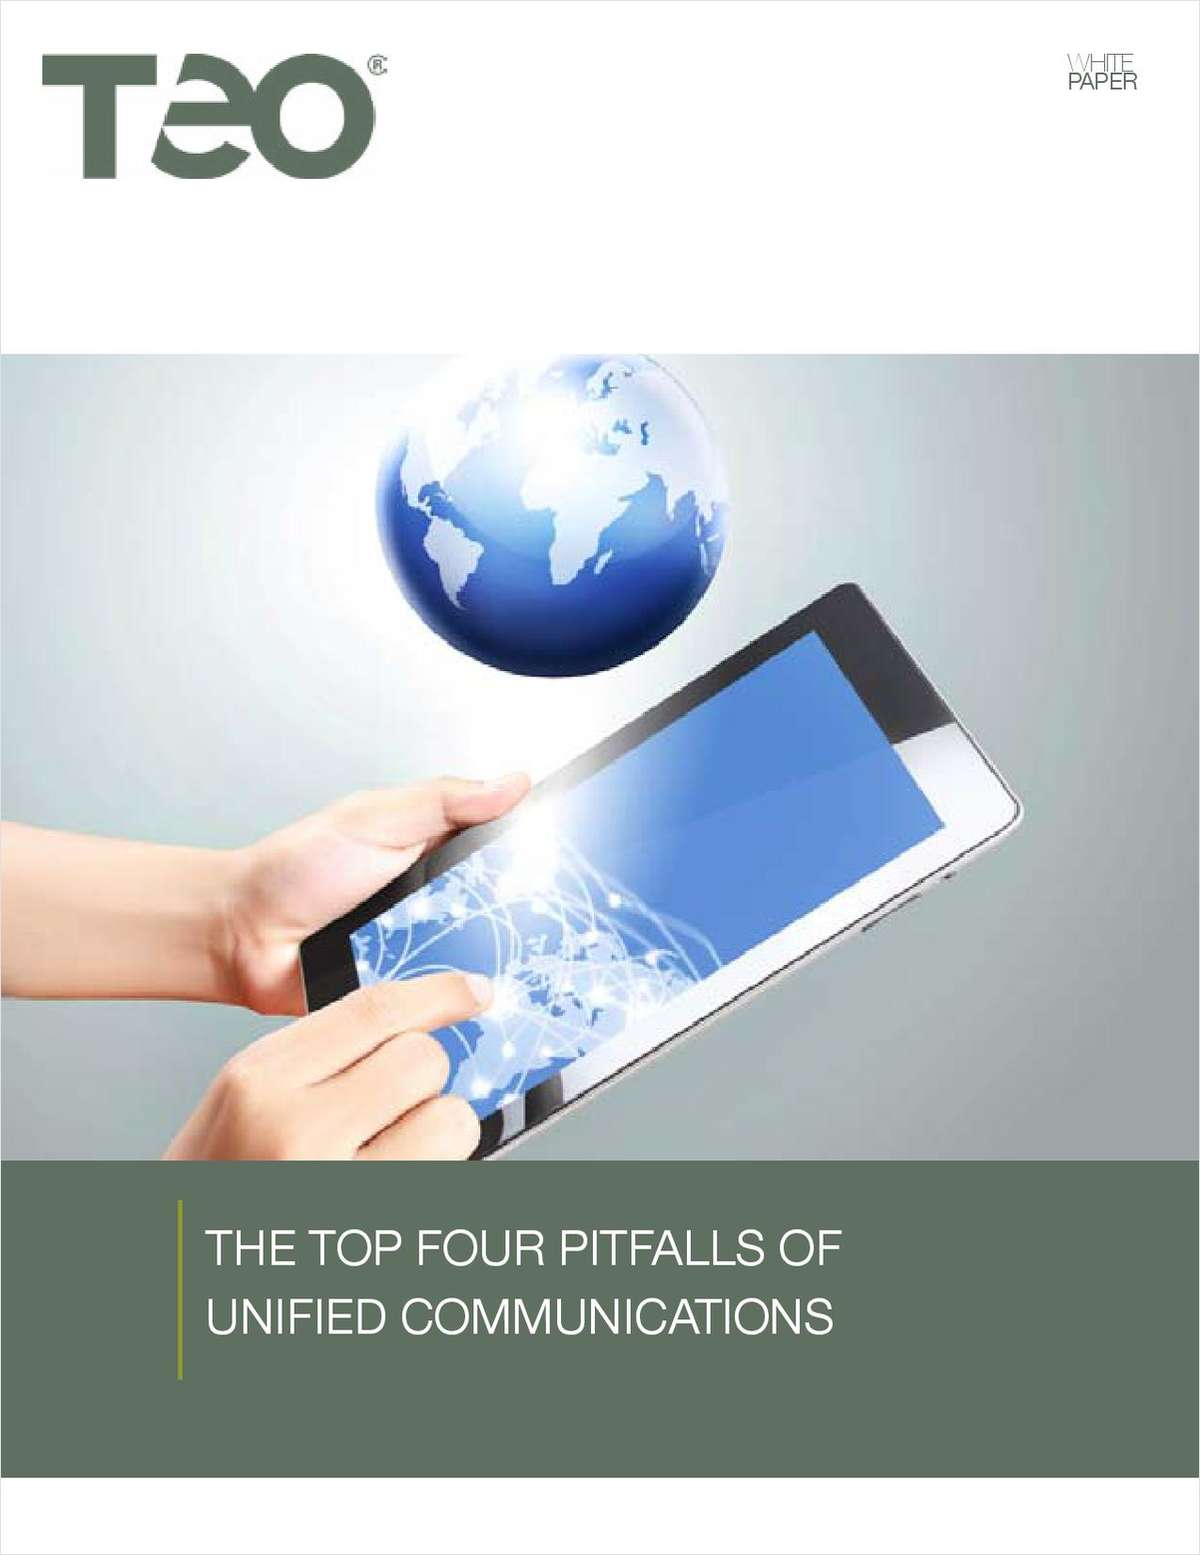 Top Four Pitfalls of Unified Communications